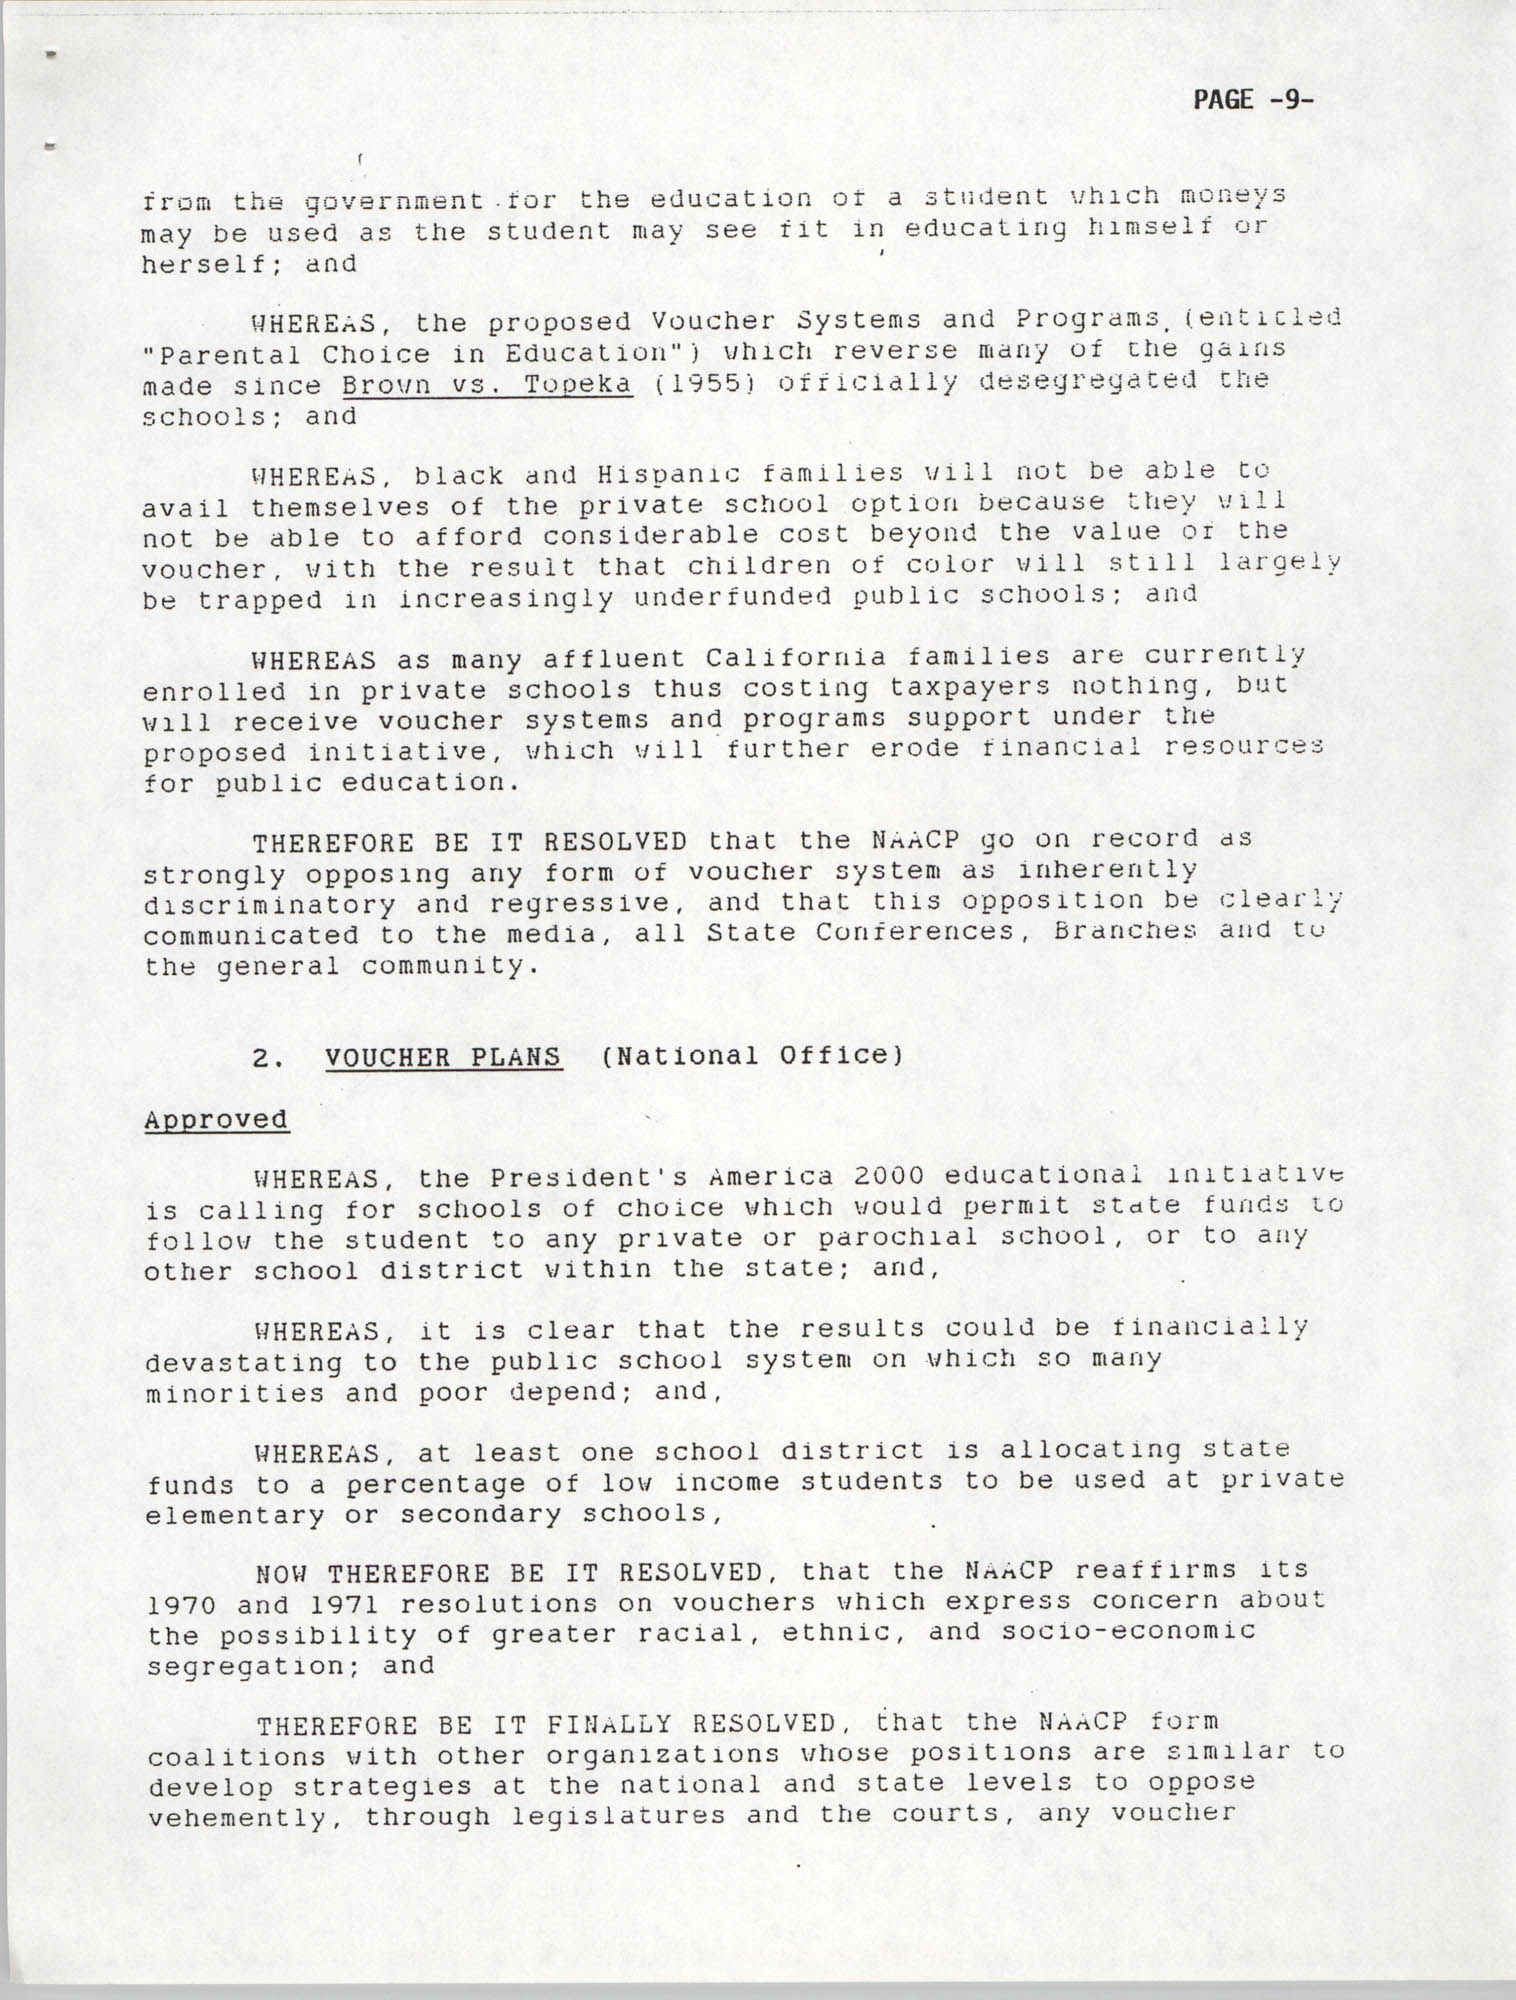 Resolutions Submitted Under Article X, Section 2 of the Constitution of the NAACP, 1992, Page 9